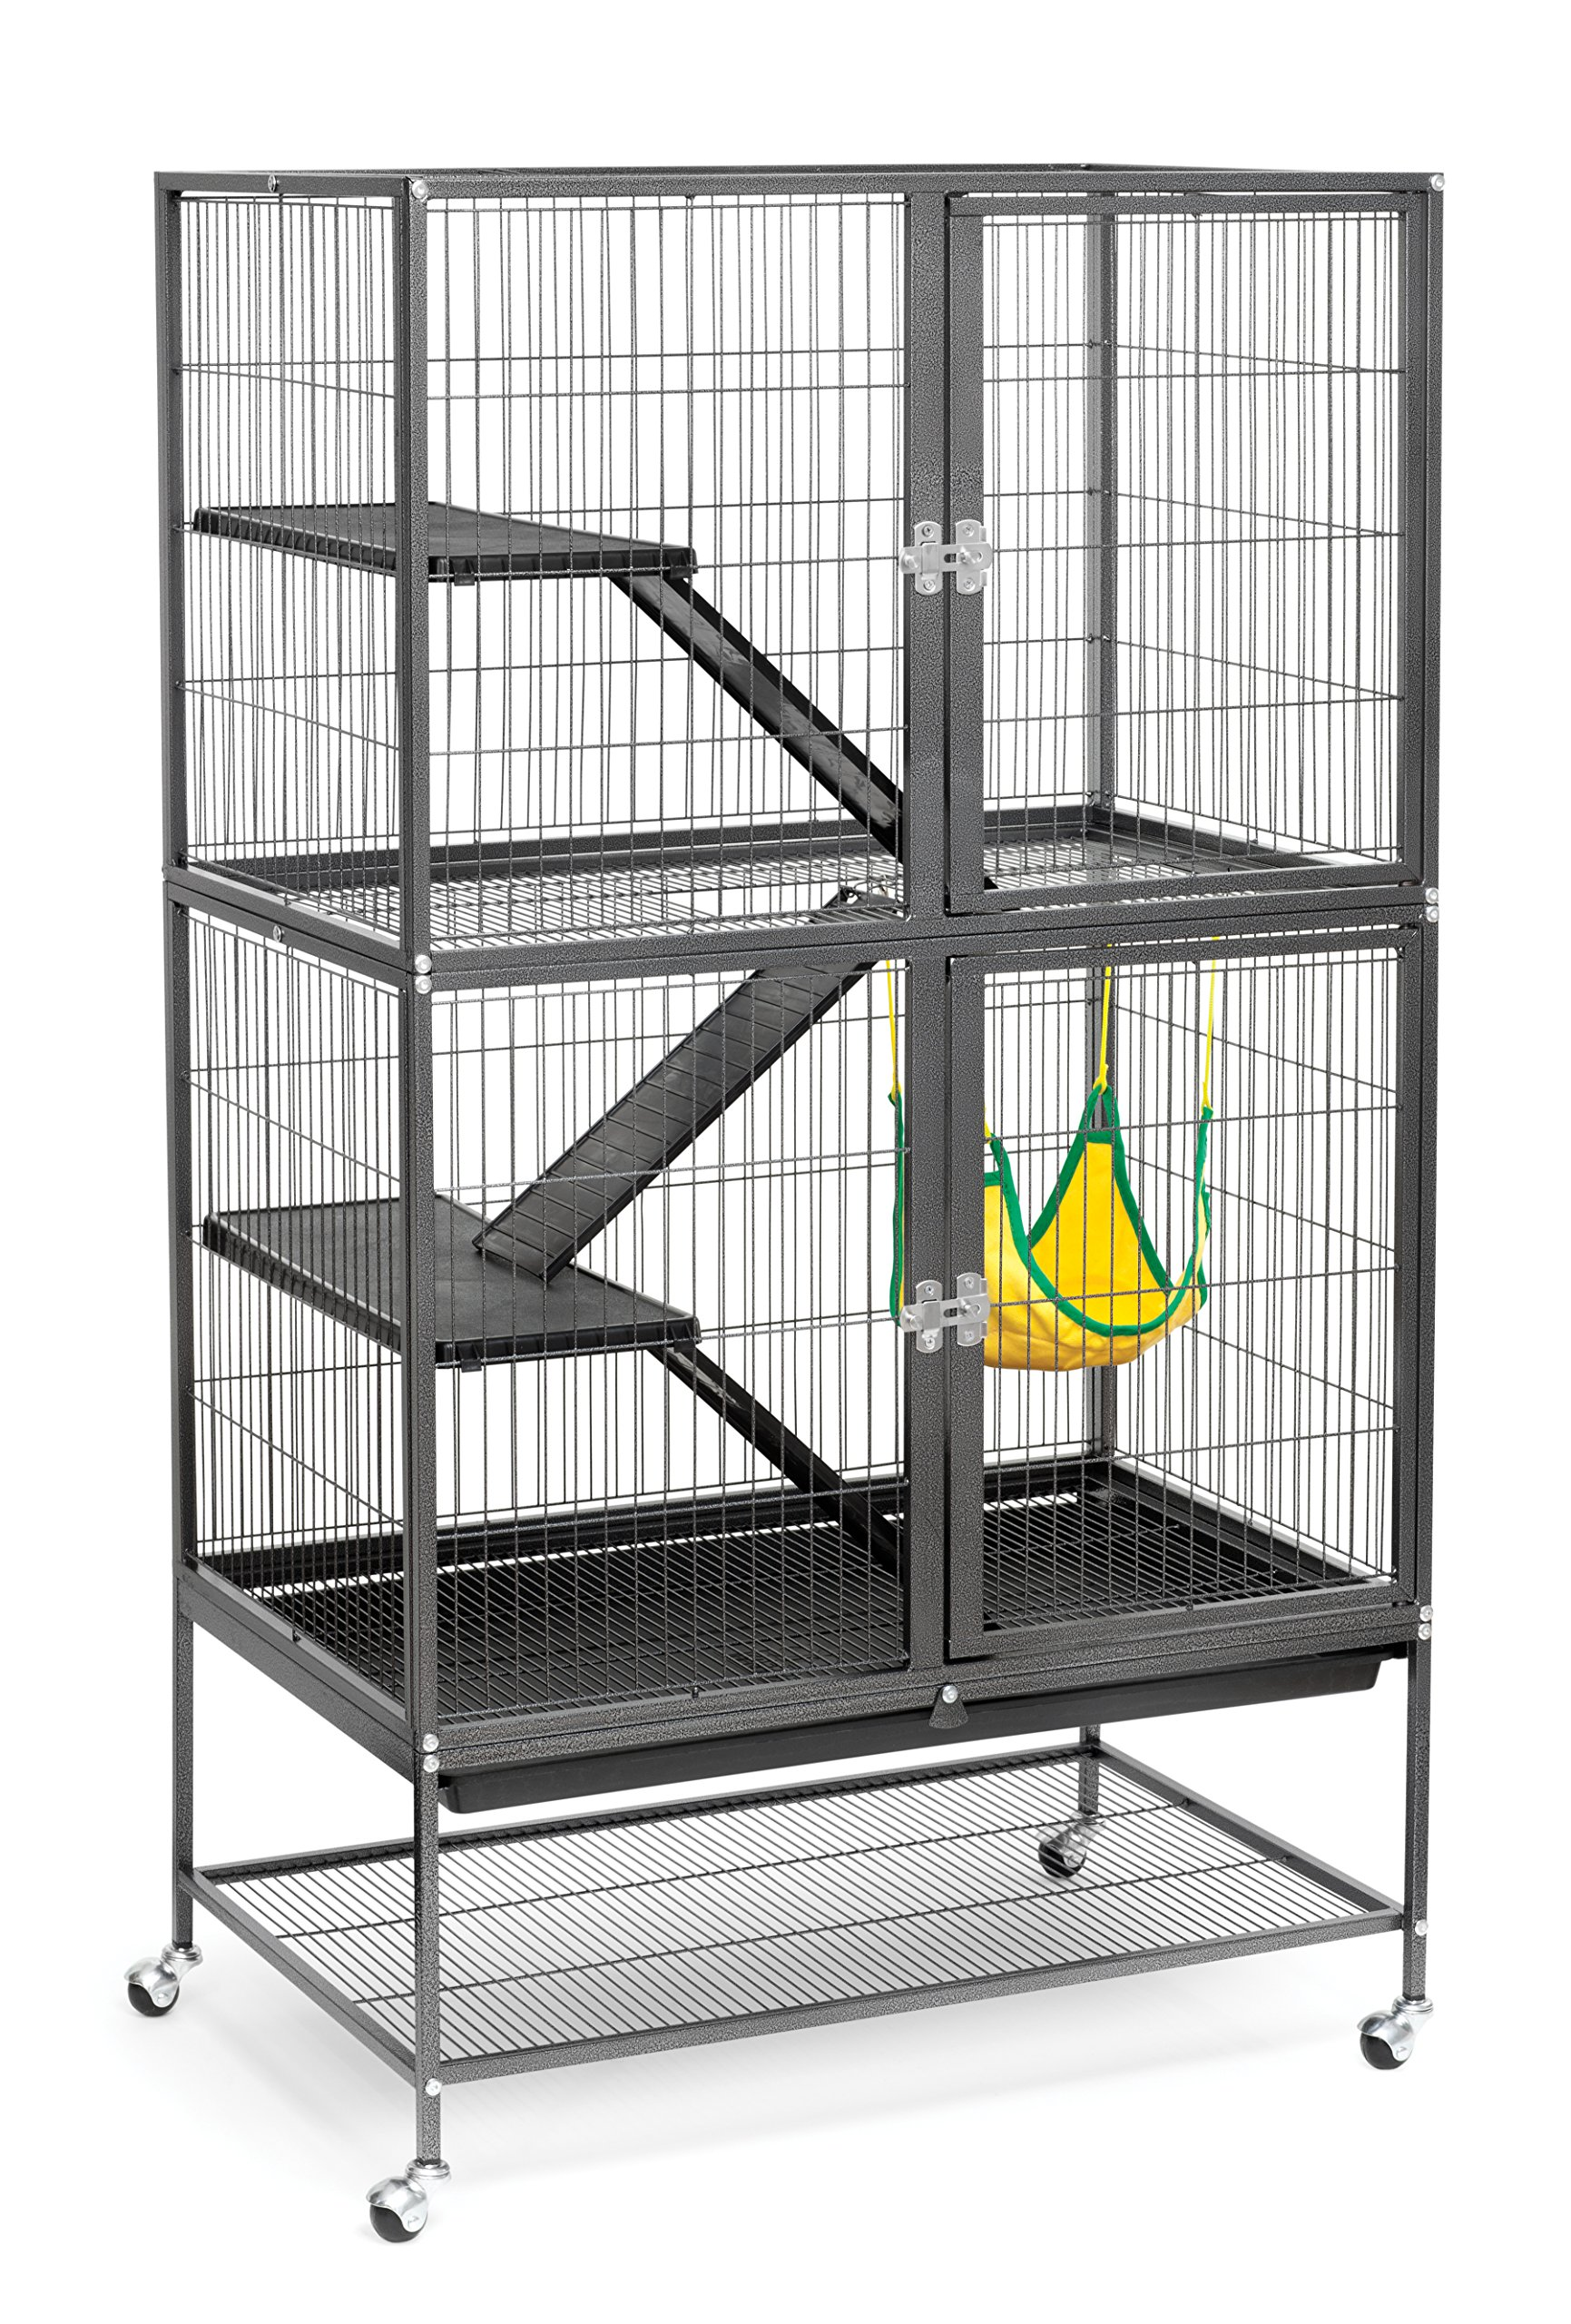 Prevue Hendryx 485 Pet Products Feisty Ferret Home with Stand, Black Hammertone by Prevue Hendryx